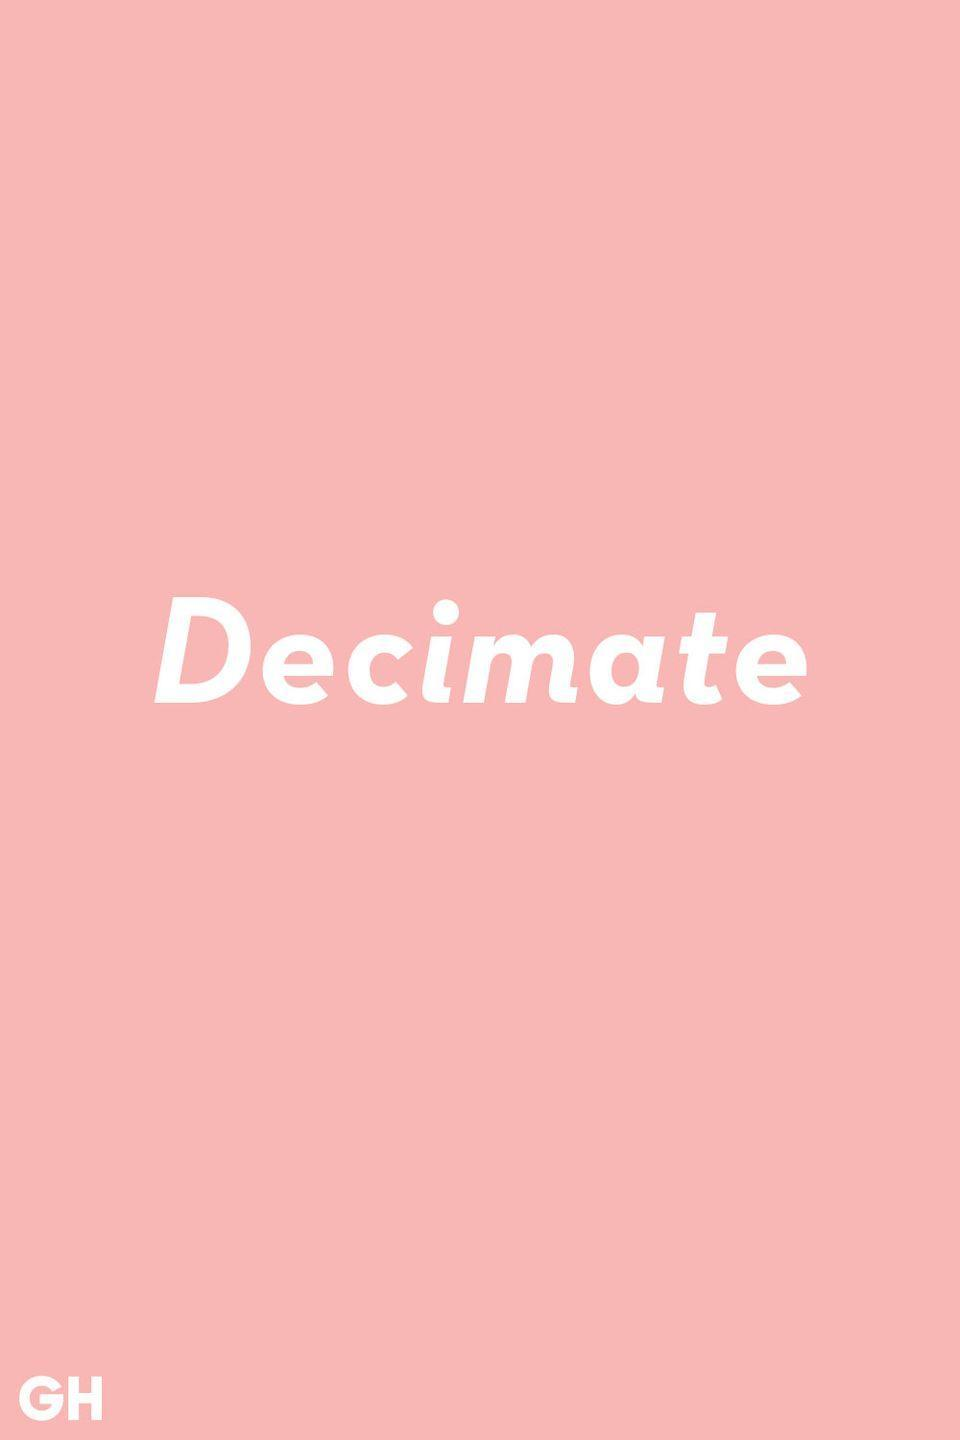 <p>You've probably heard decimate used in the context of something getting destroyed. Put that out of your mind. The true definition is to reduce something by one tenth.</p>